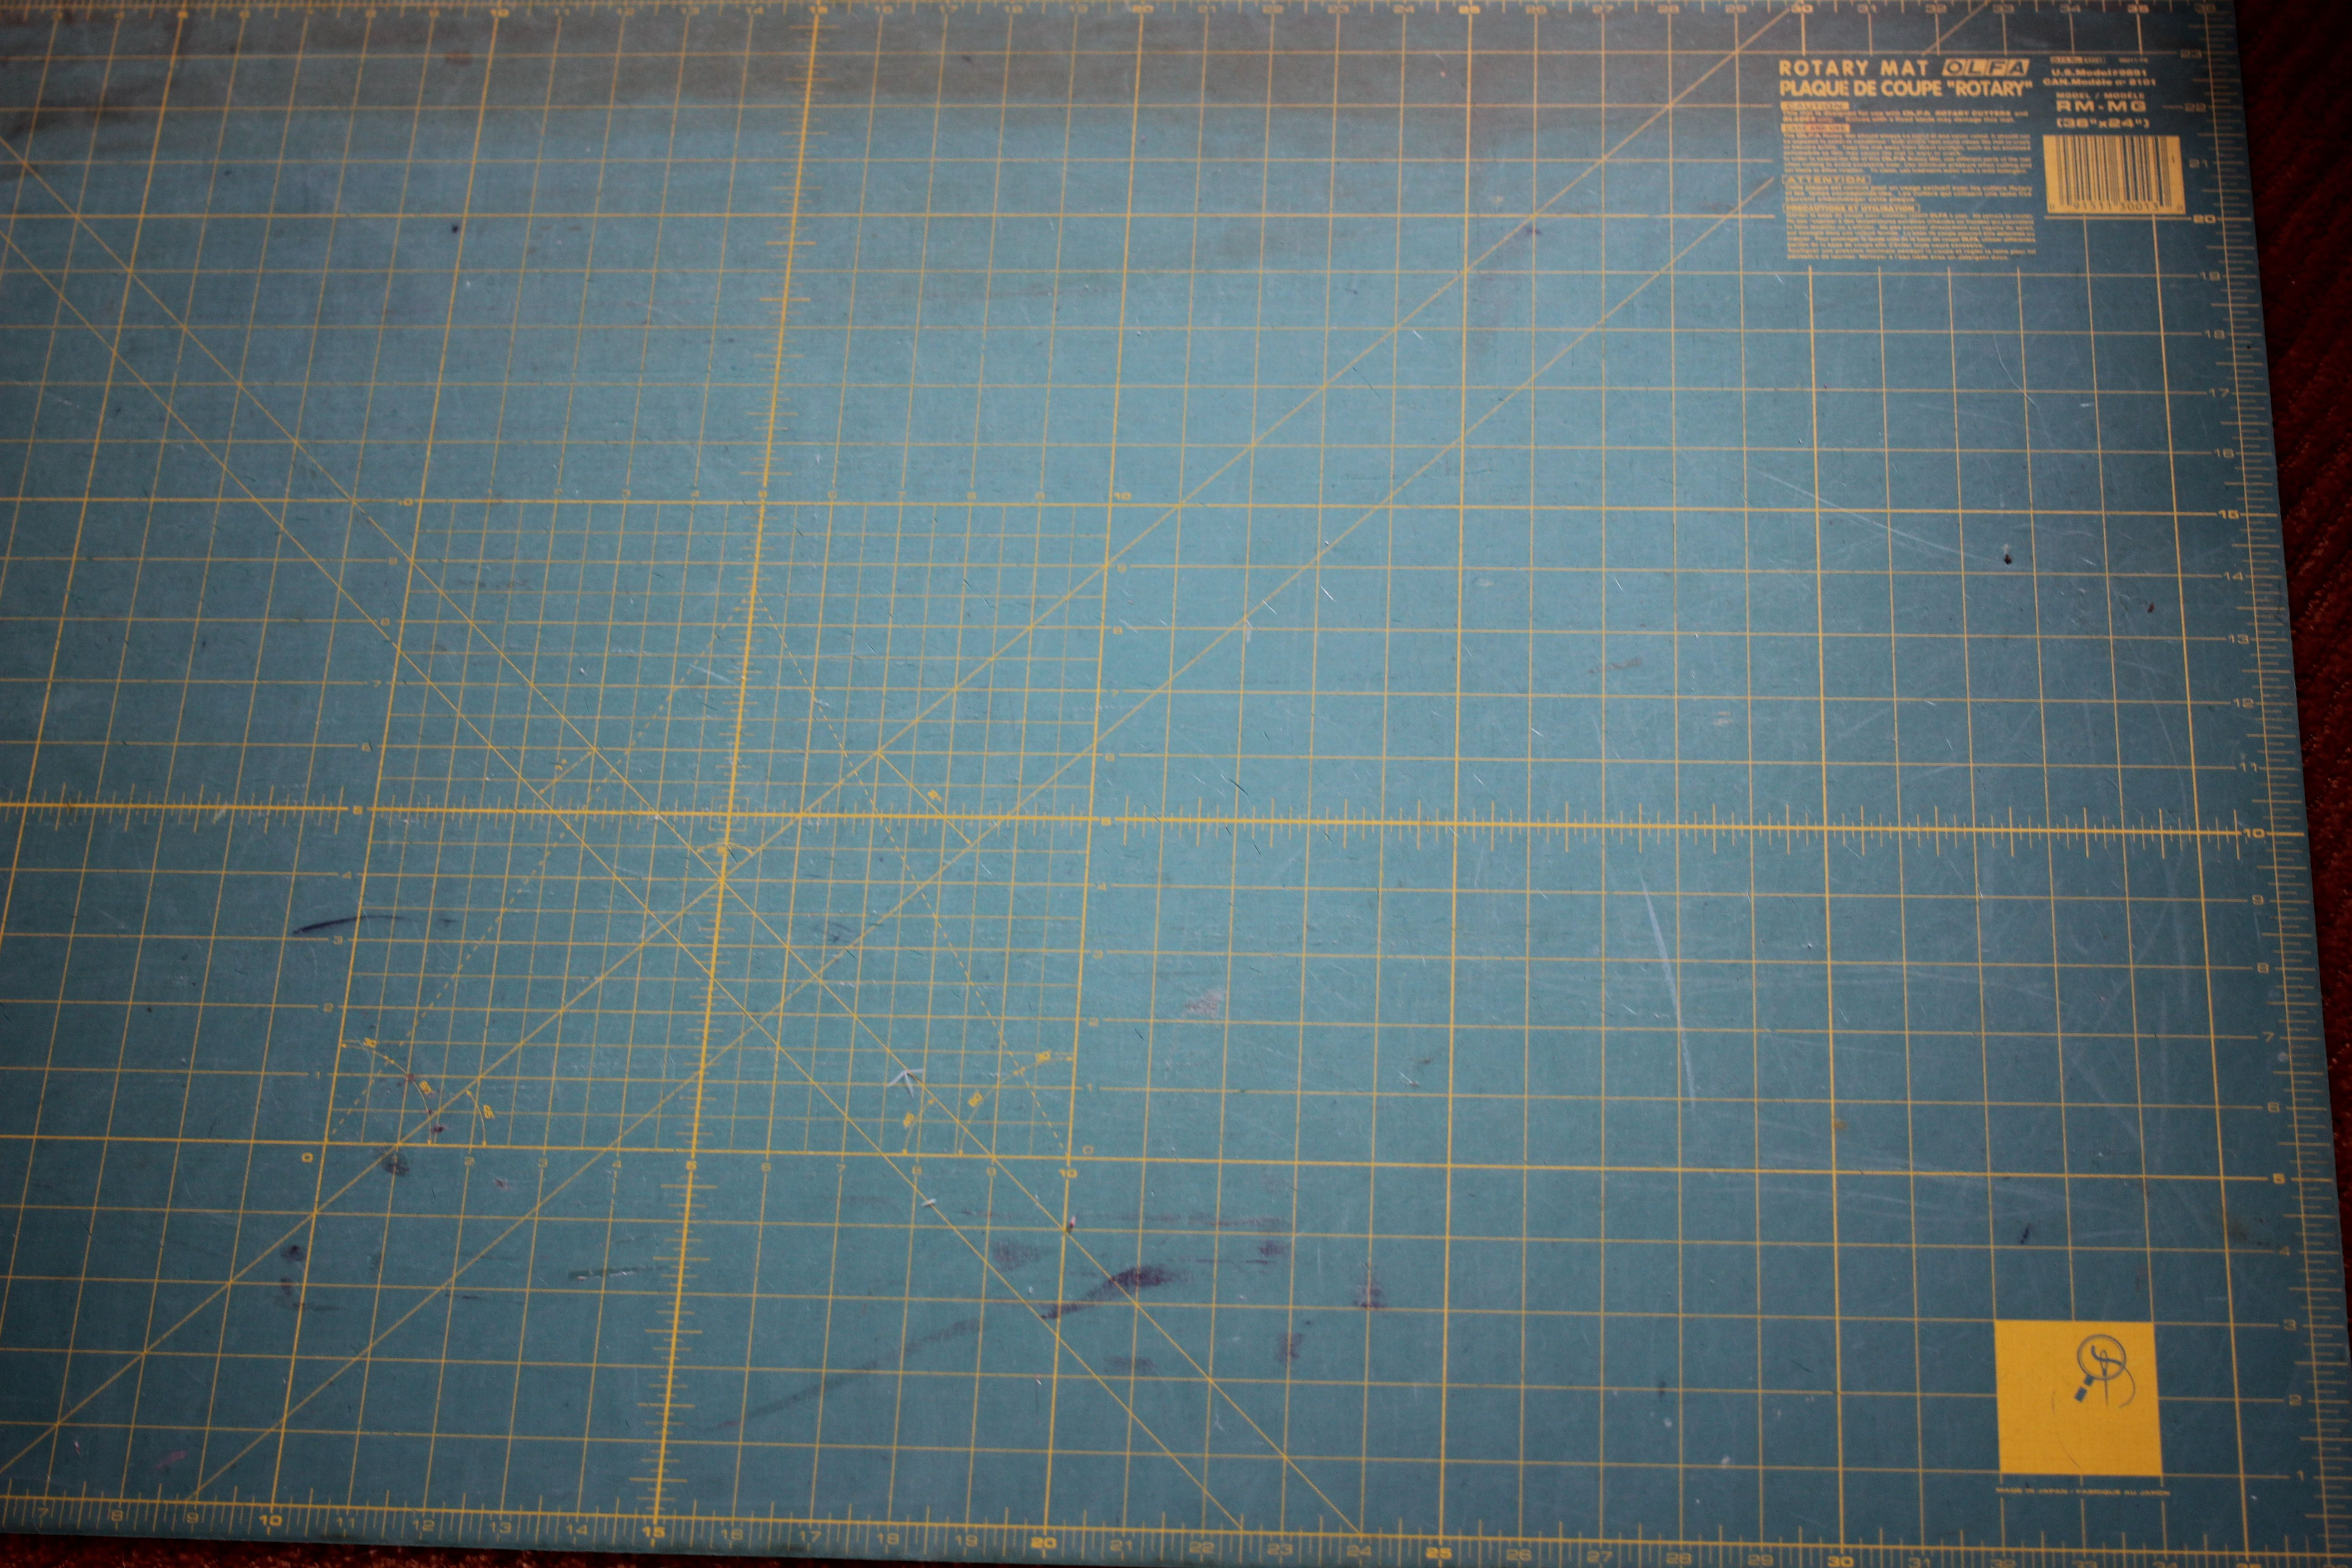 cabinets of america fashion model mat mats pinnable sewing cutting x